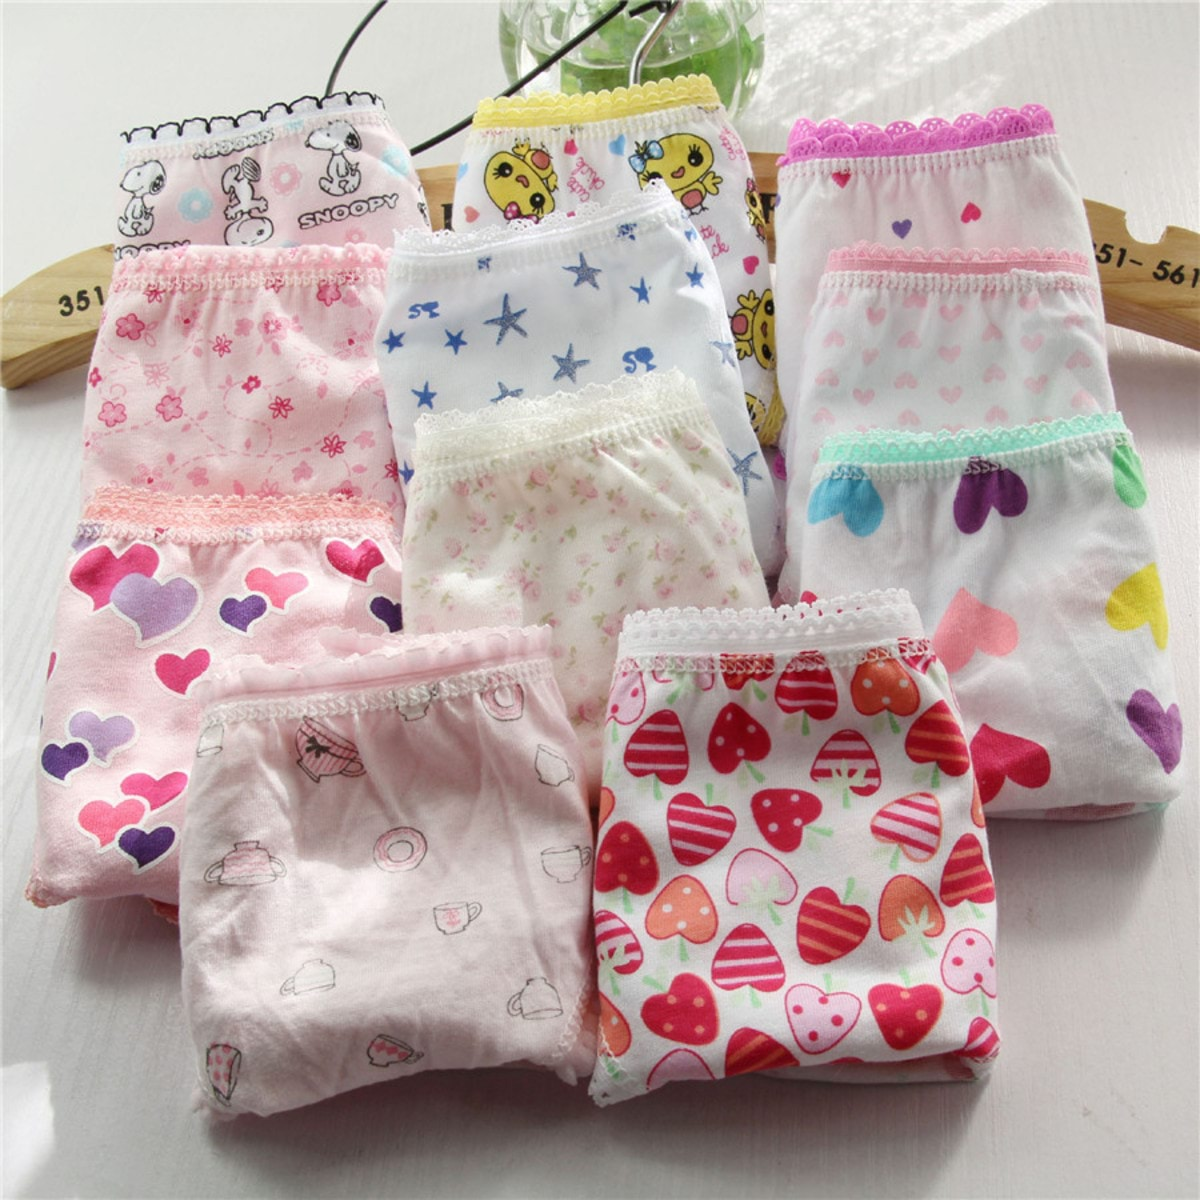 girls-ruffle-panties-briefs-panties-kitty-baby-kids-pants-wholesale-short-panties-girl-kids-underwear-cheap